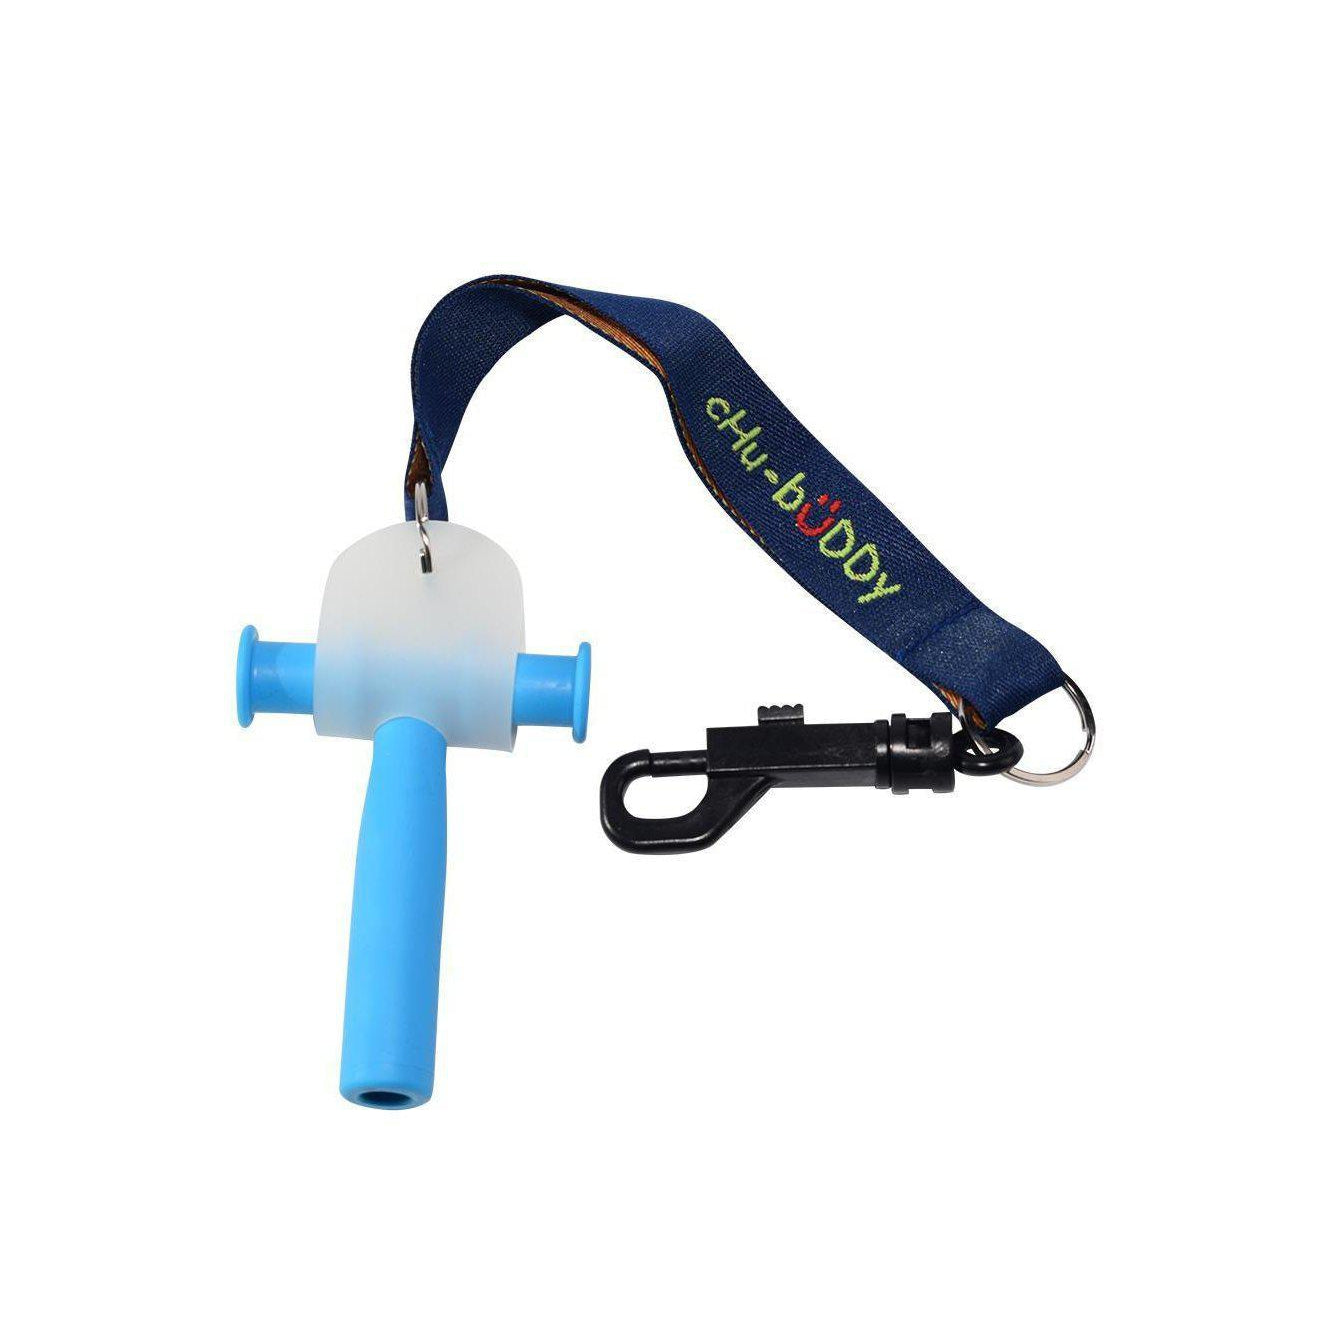 Chew Holder - navy embroidered tether-bracelet & natural strap